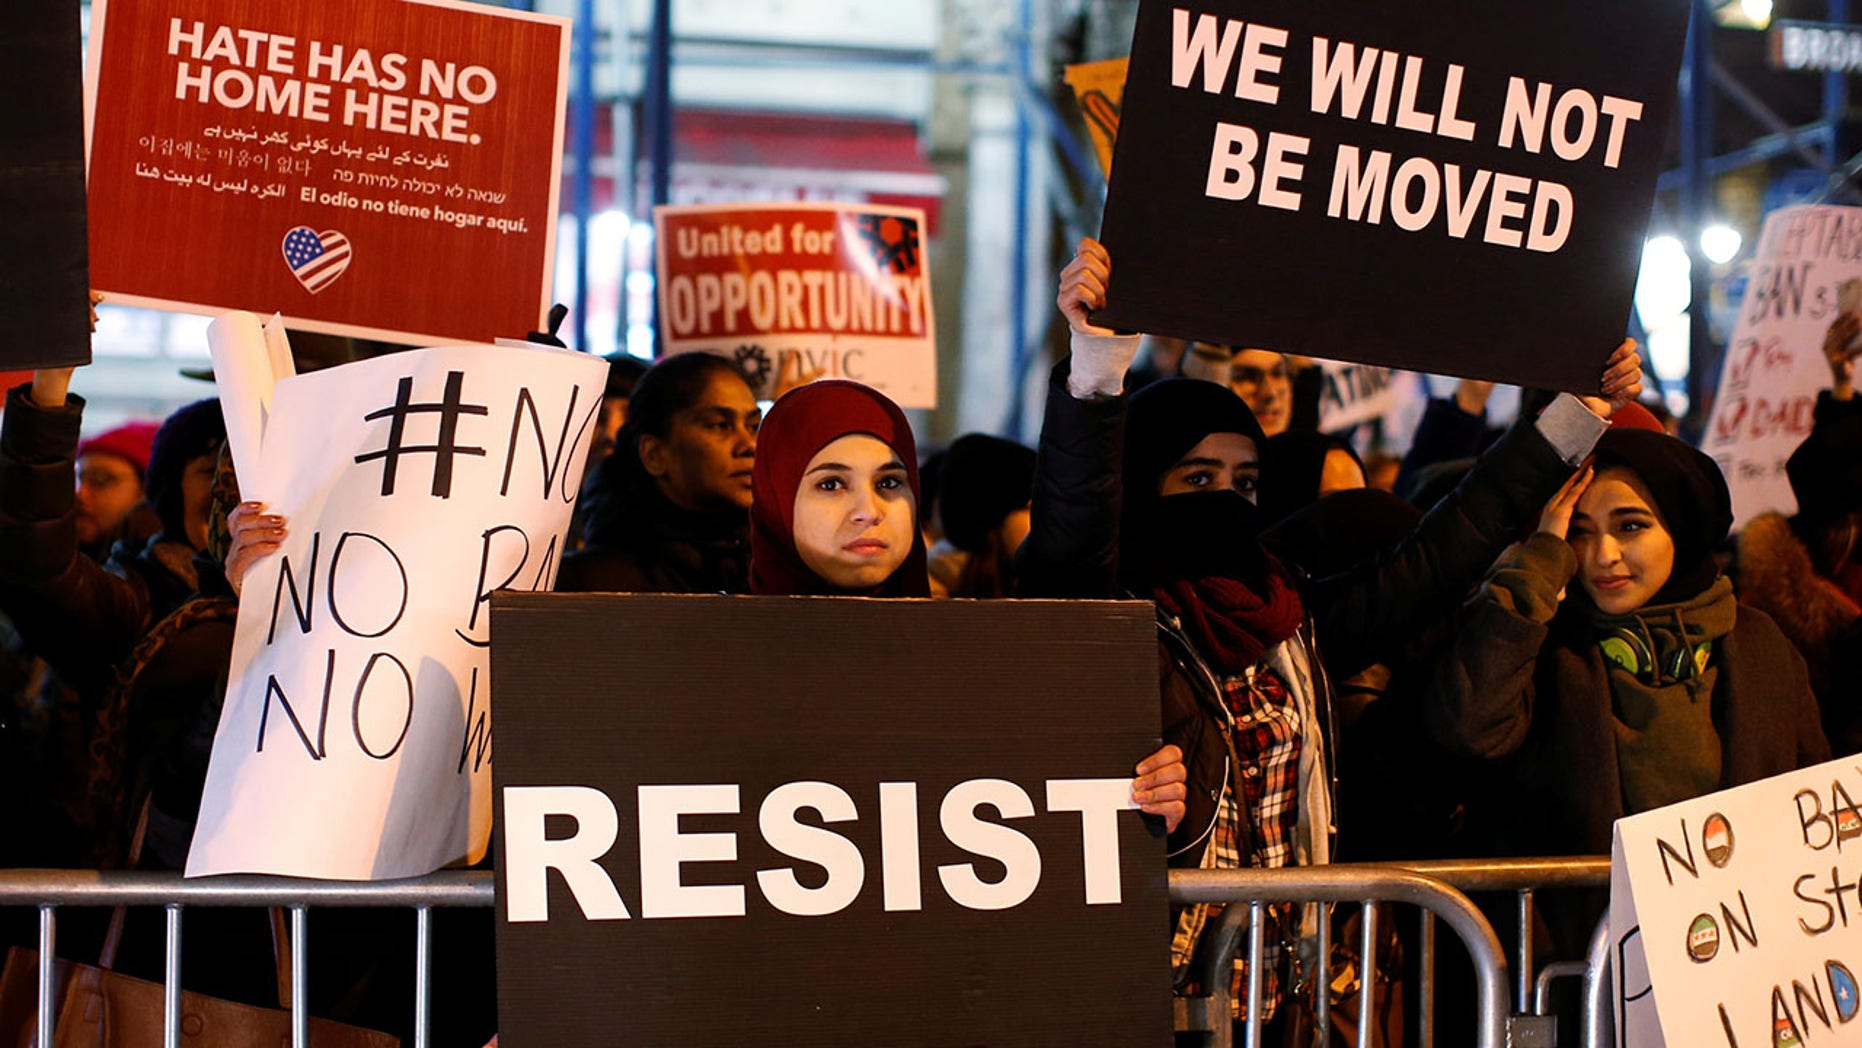 President Trump's January travel ban sparked nationwide protests.